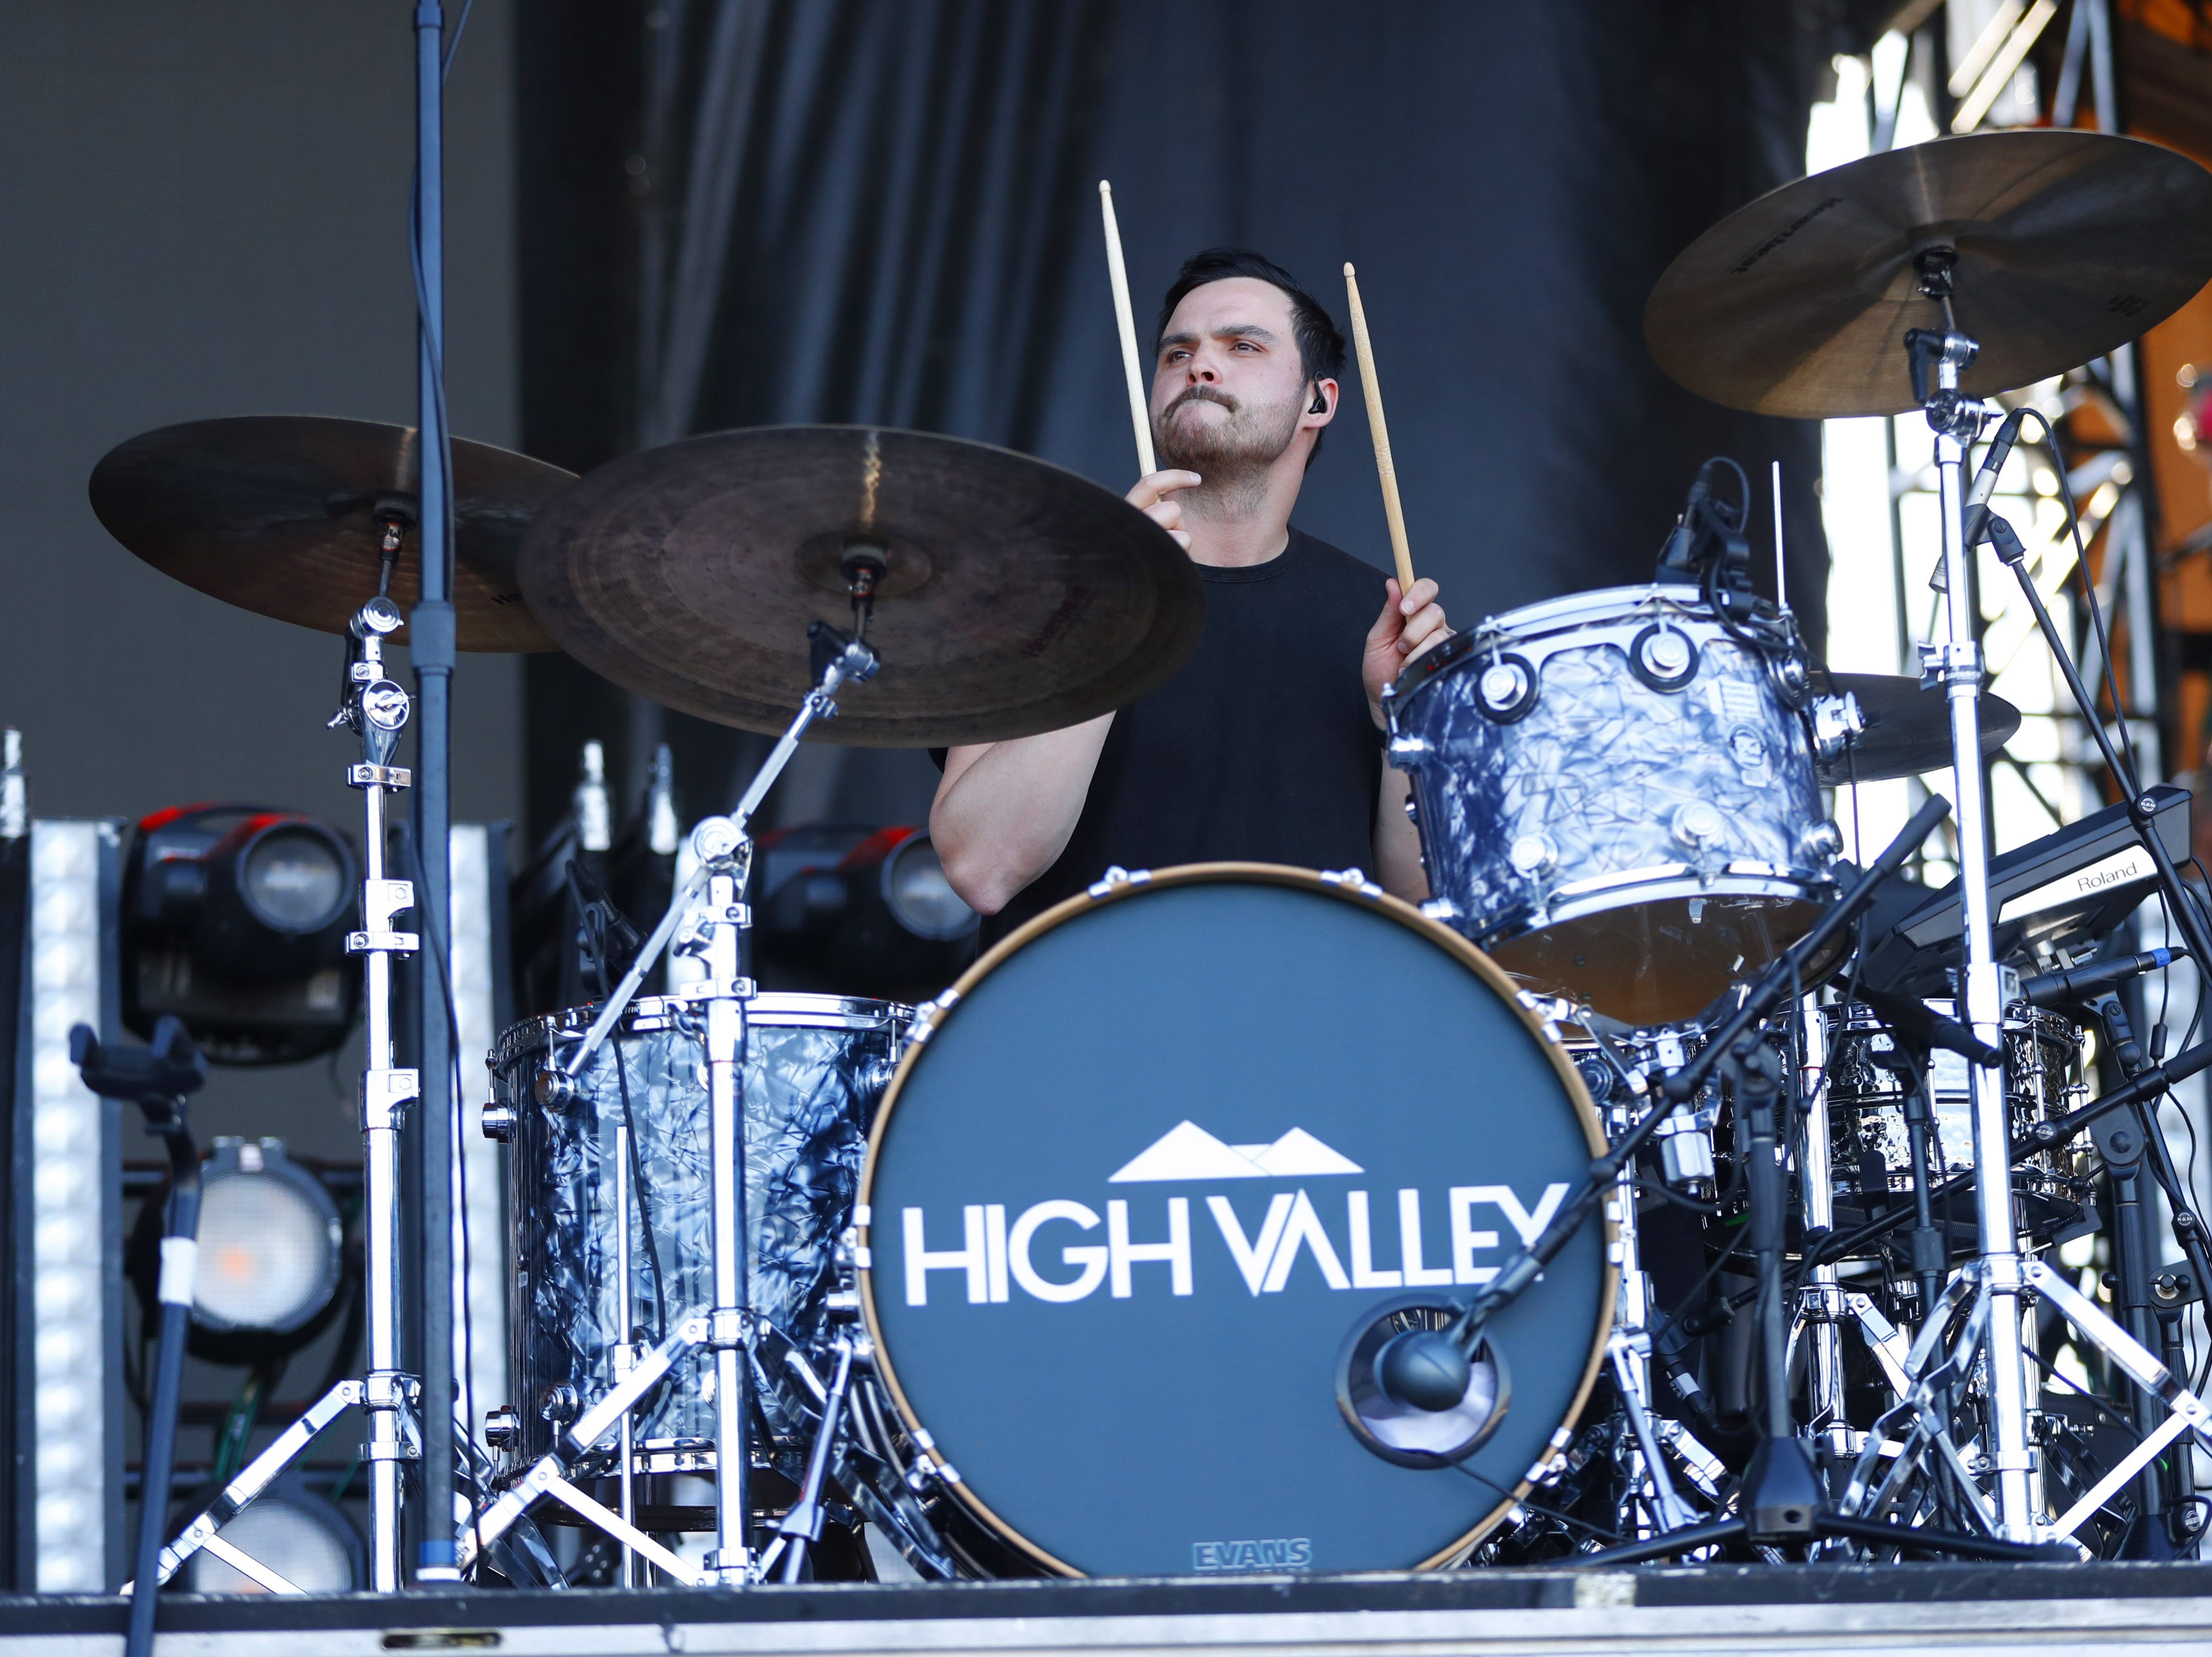 High Valley's drummer Andrew Hemmerling performs during Country Thunder in Florence, Ariz. on Saturday, April 13, 2019.